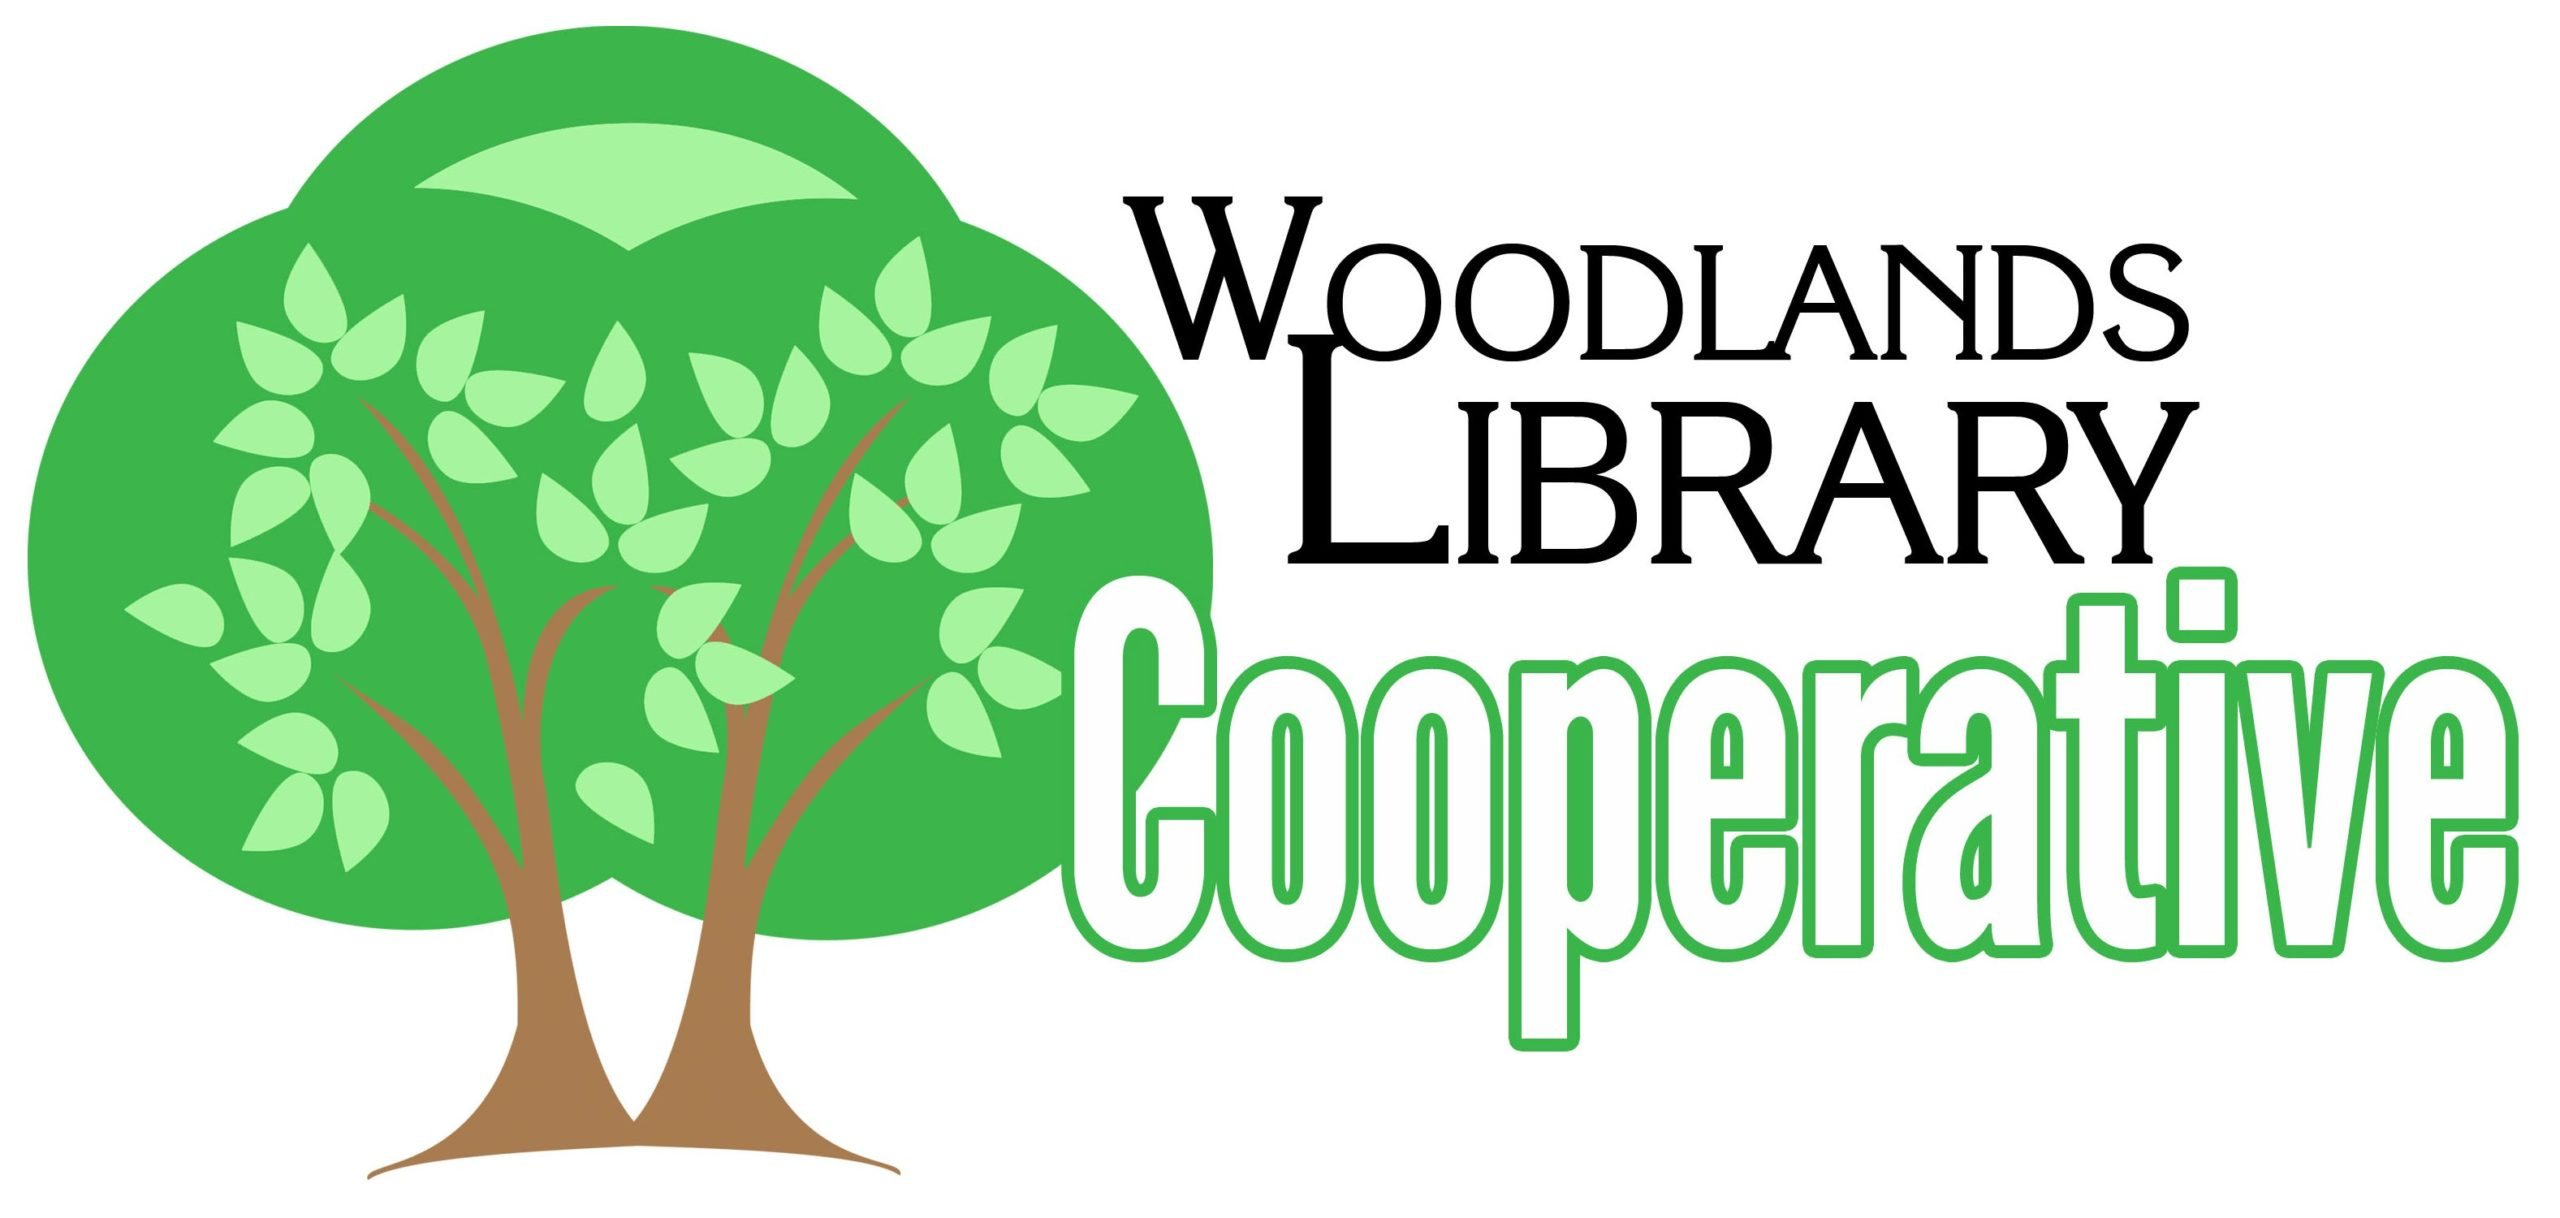 Woodlands Library Cooperative Logo